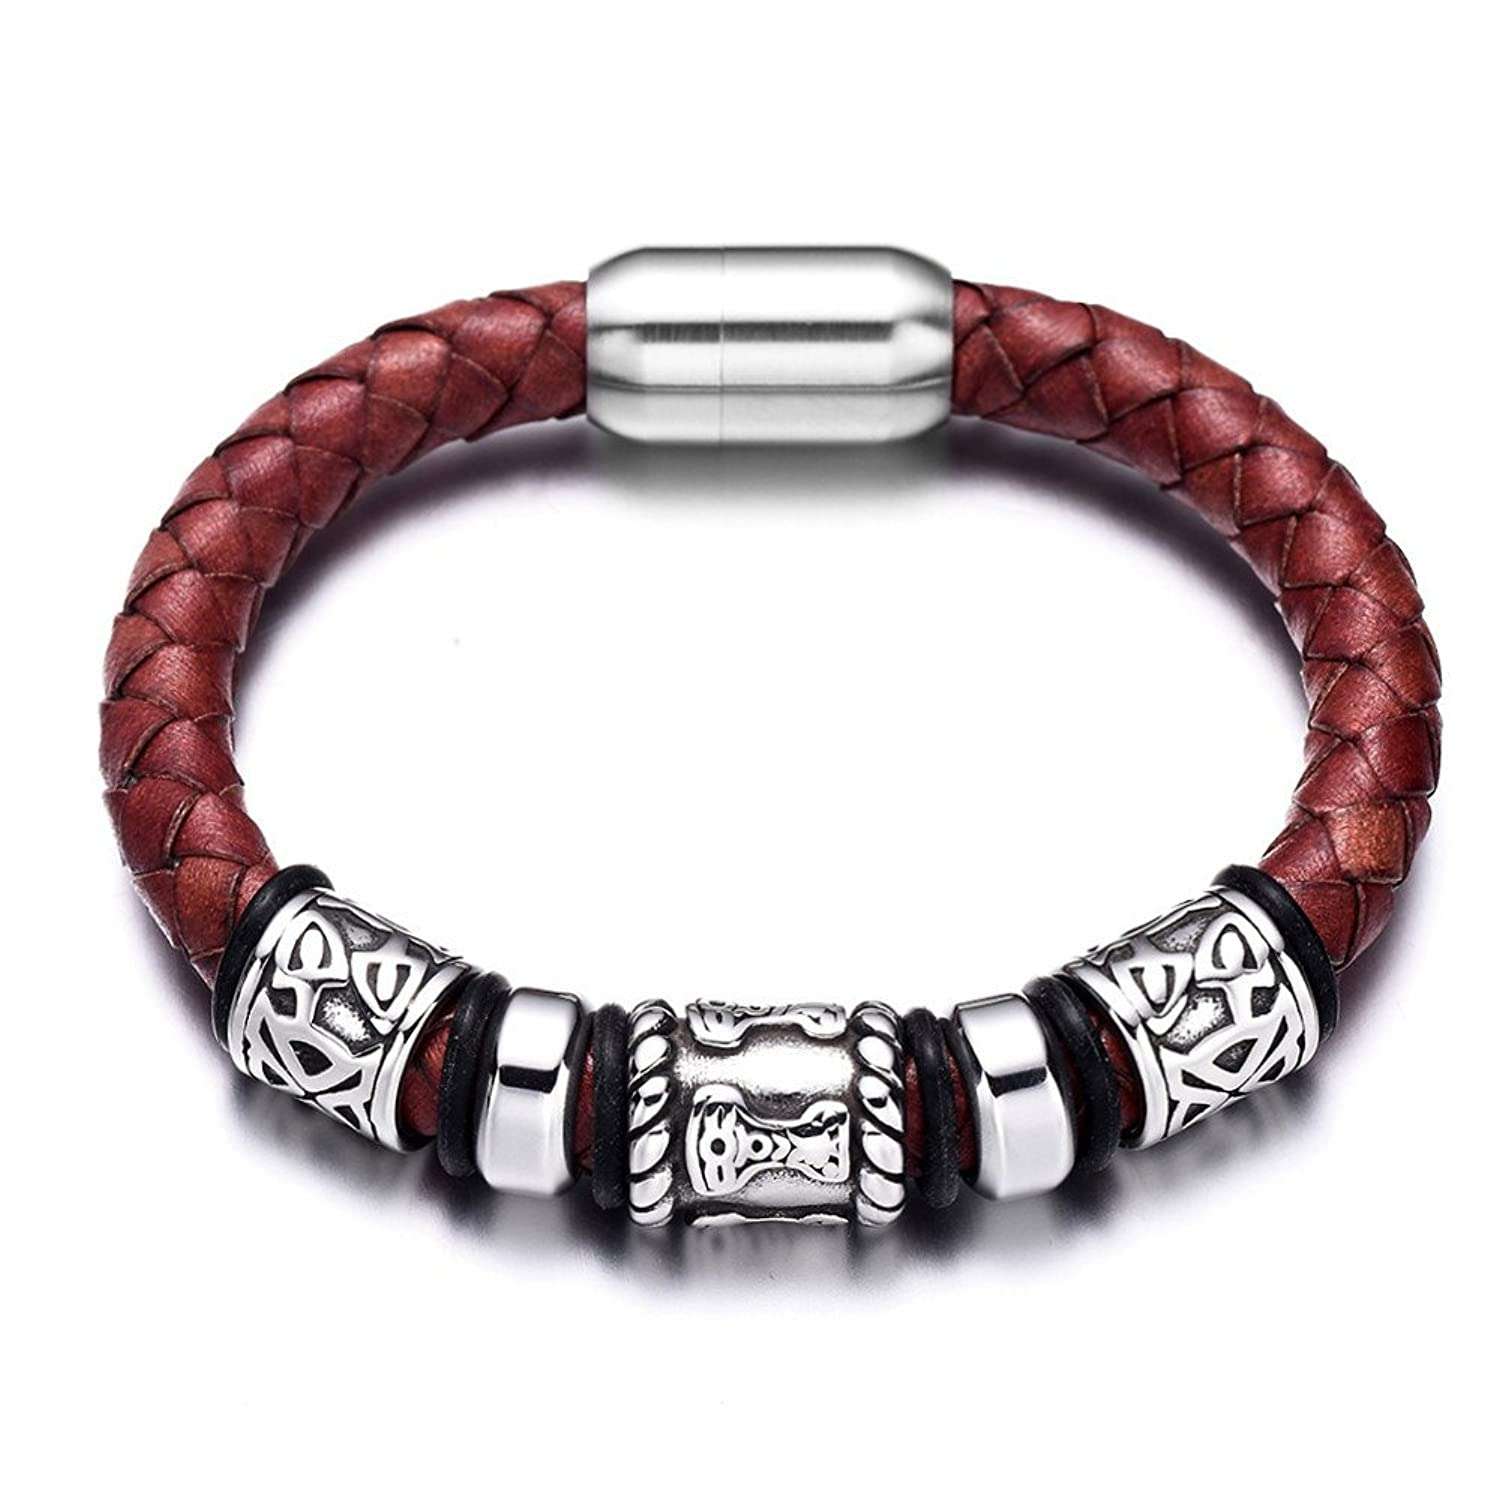 Medieval Stainless Steel Beads Wine Red Braided Genuine Leather Bracelet - DeluxeAdultCostumes.com